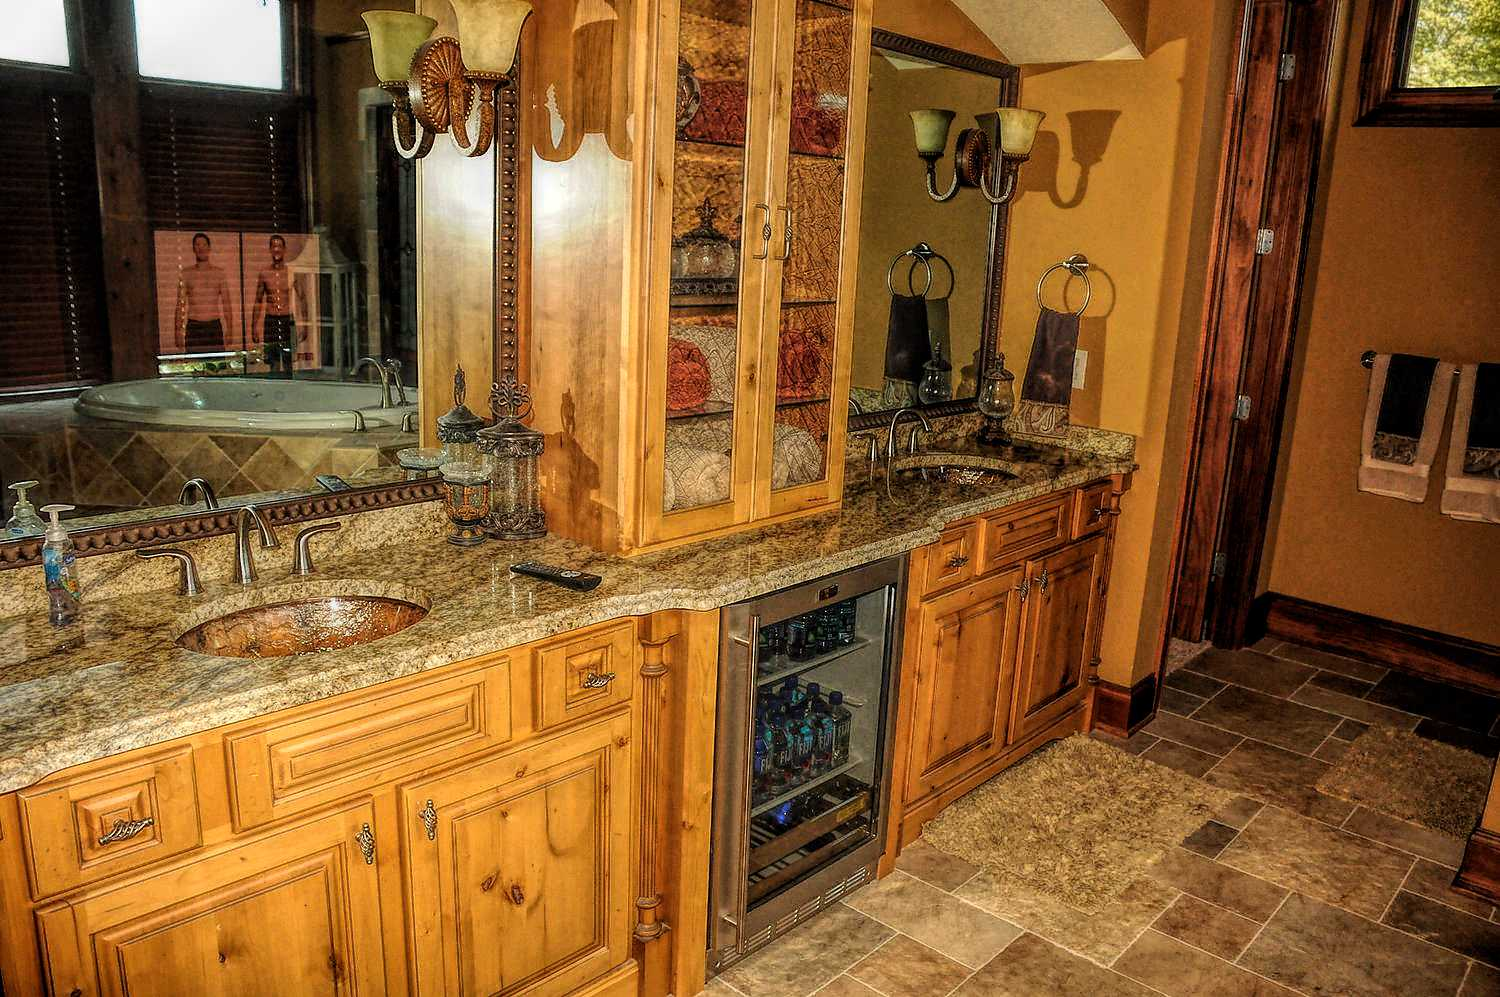 His and her separate vanity sinks with Granite top and beverage cooler